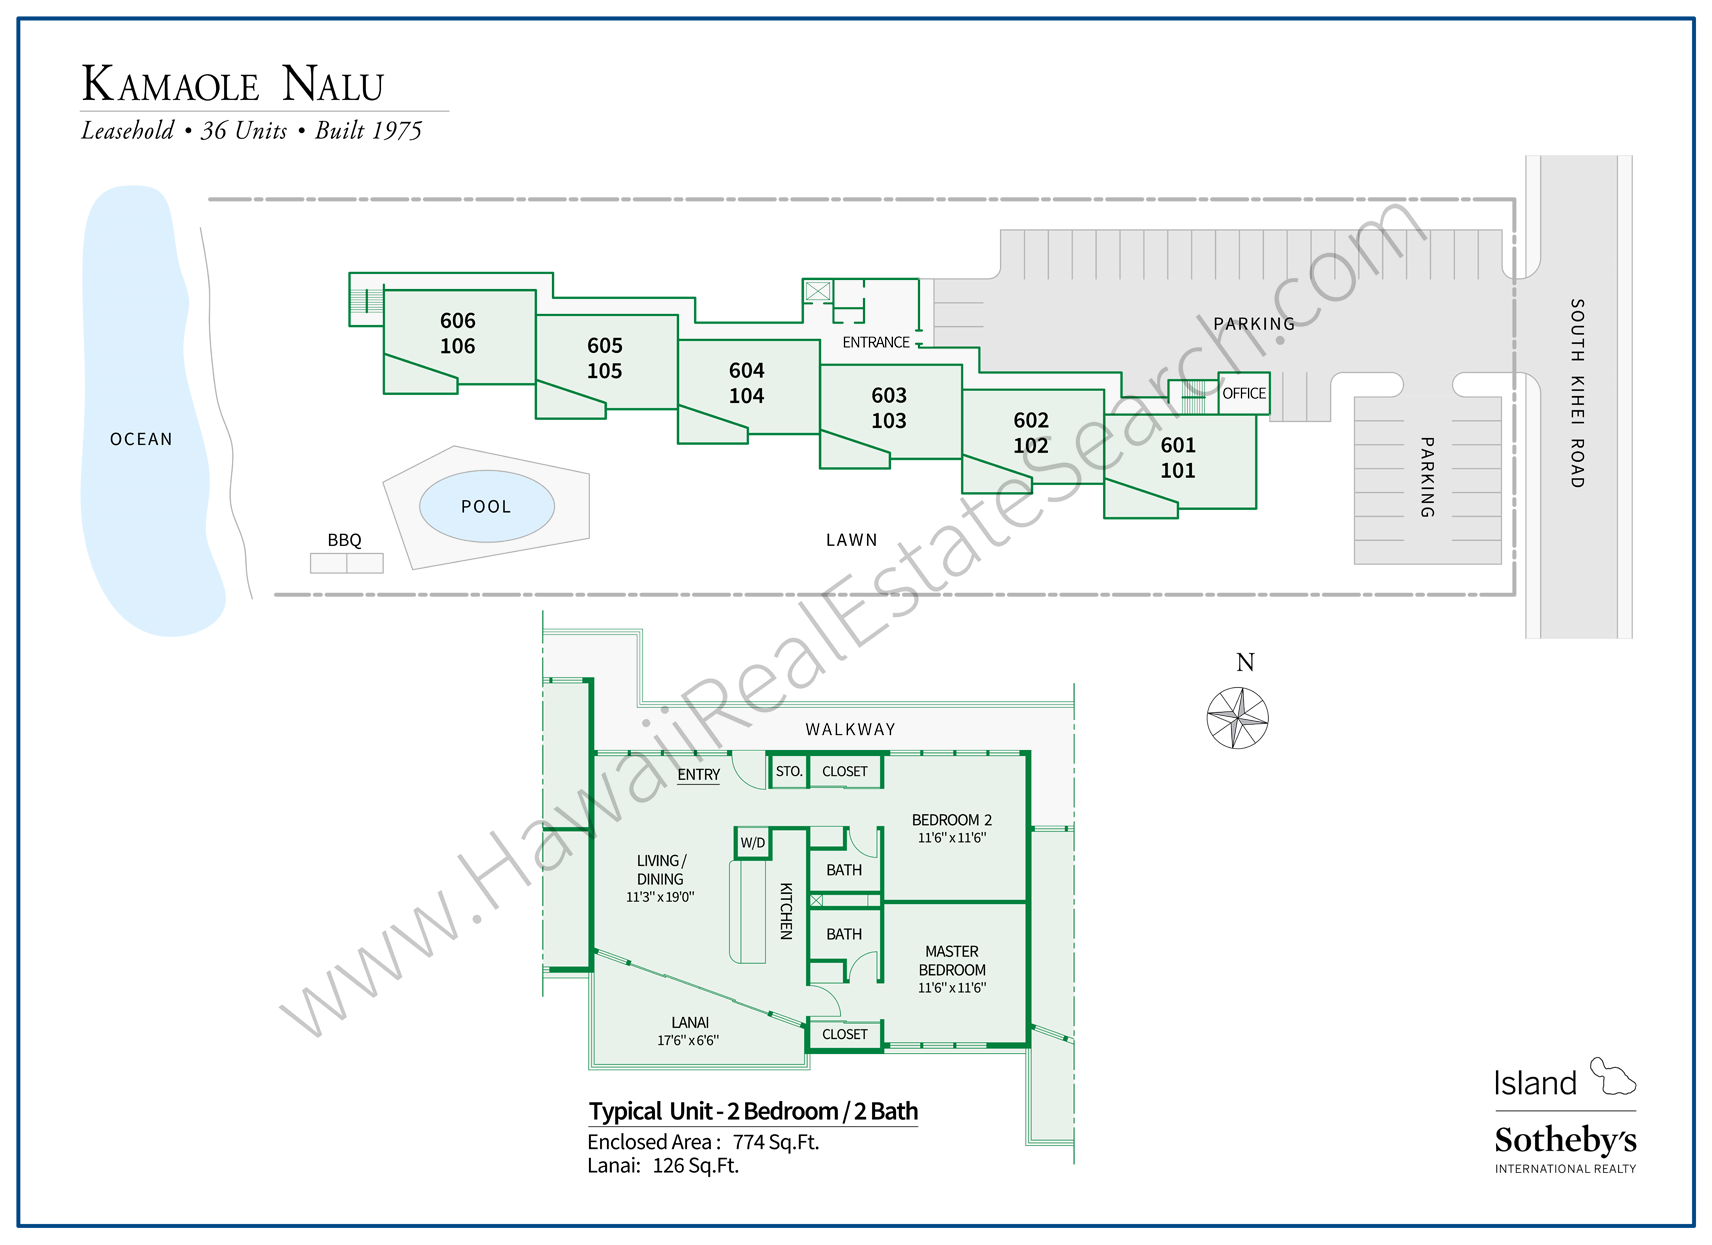 Kamaole Nalu Map with Floor Plan